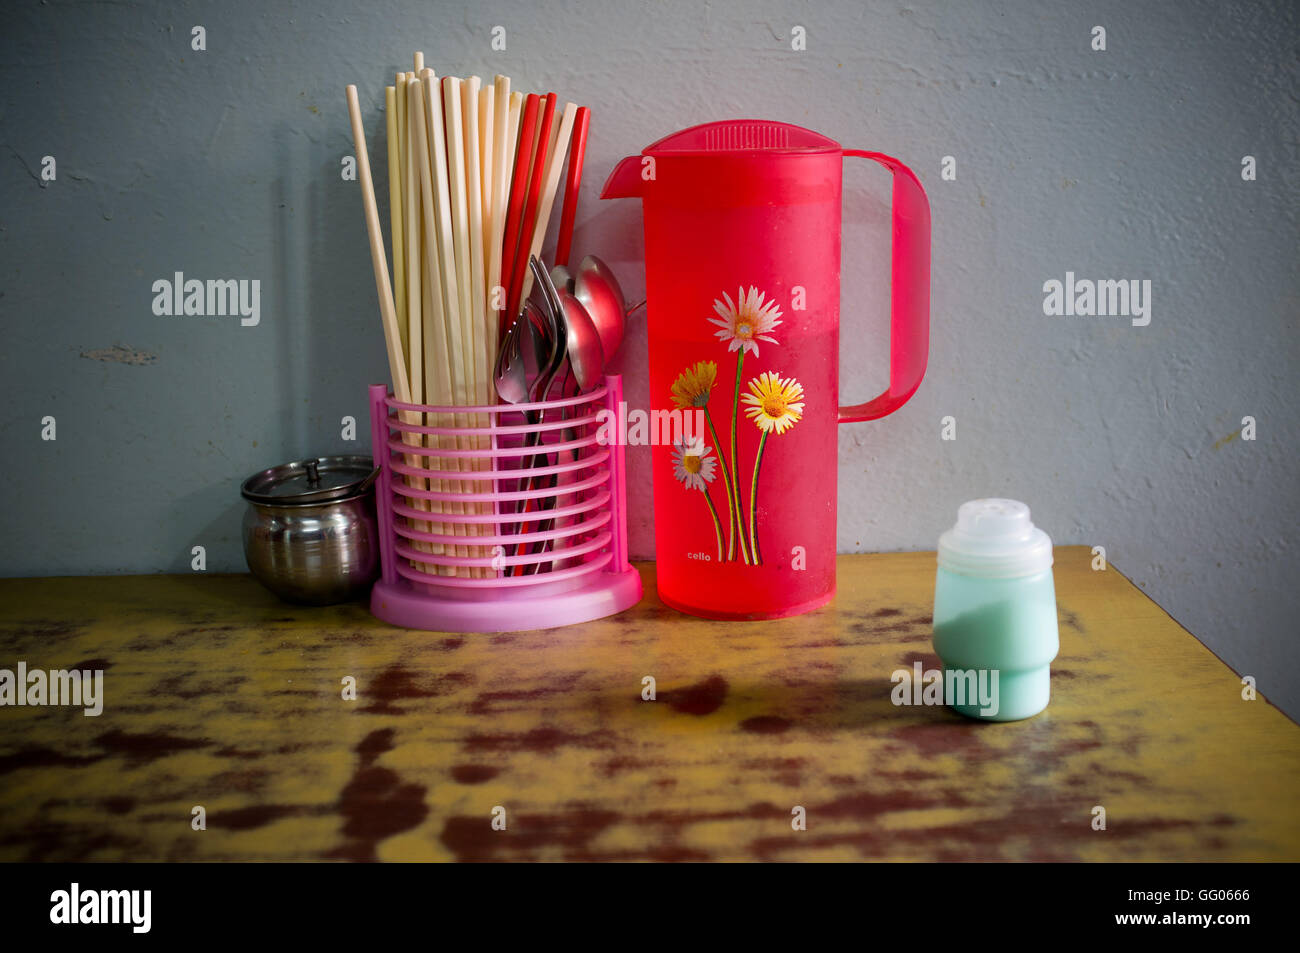 Dharamsala, Himachal Pradesh, India. 14th May, 2013. File Image - Chopsticks and cutlery ready on the table of a - Stock Image